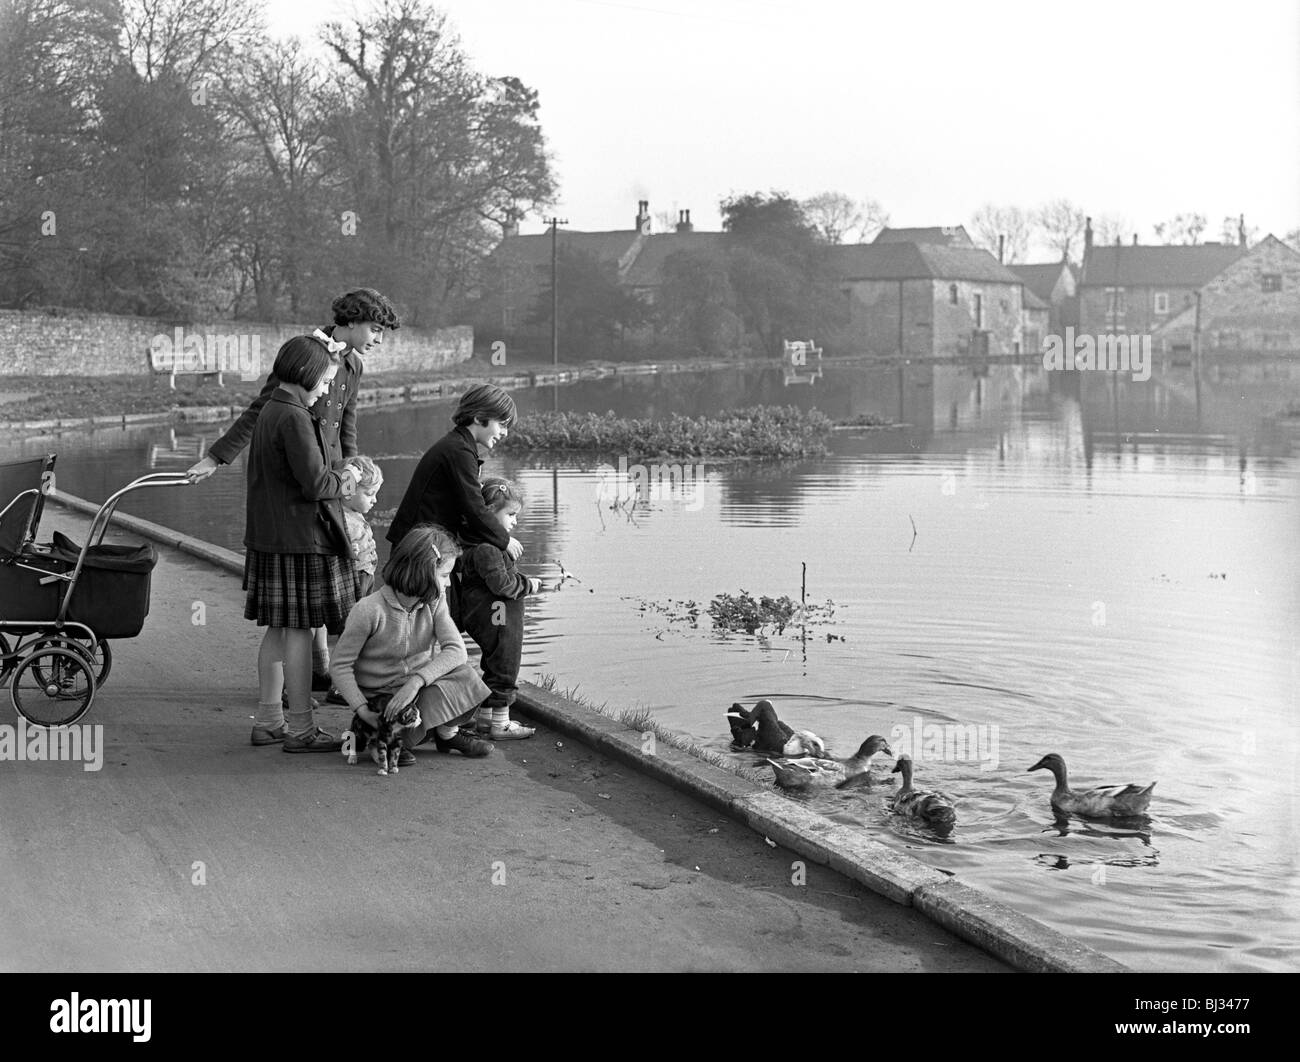 Aldea Duck Pond escena, Tickhill, Doncaster, South Yorkshire, 1961. Artista: Michael Walters Imagen De Stock